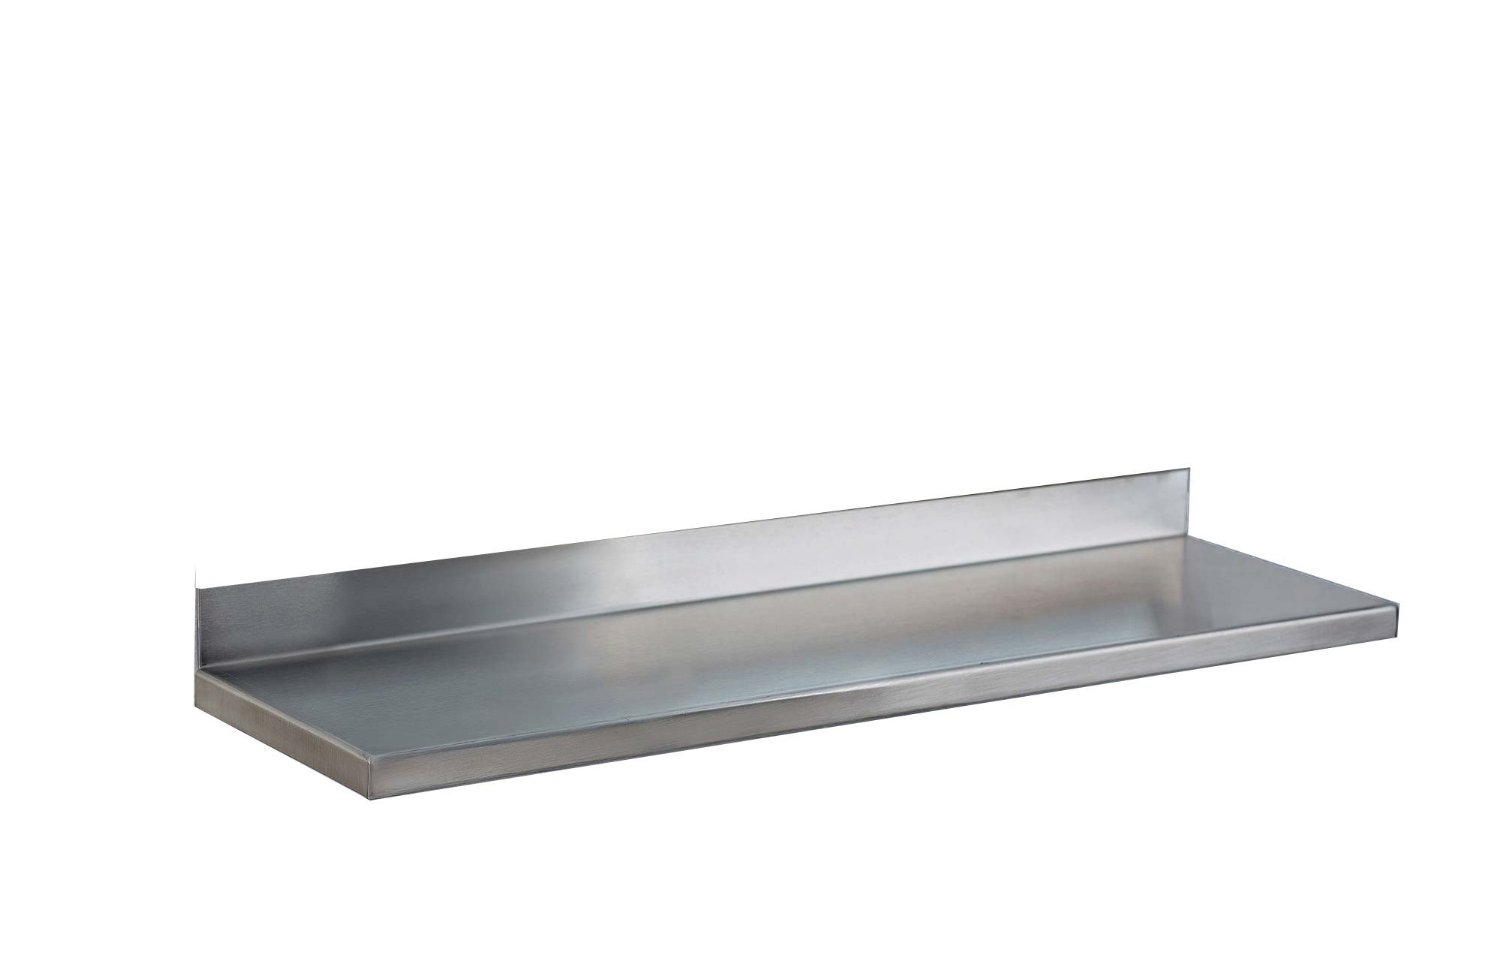 72-inch x 6-inch, Integral shelf, bright finish